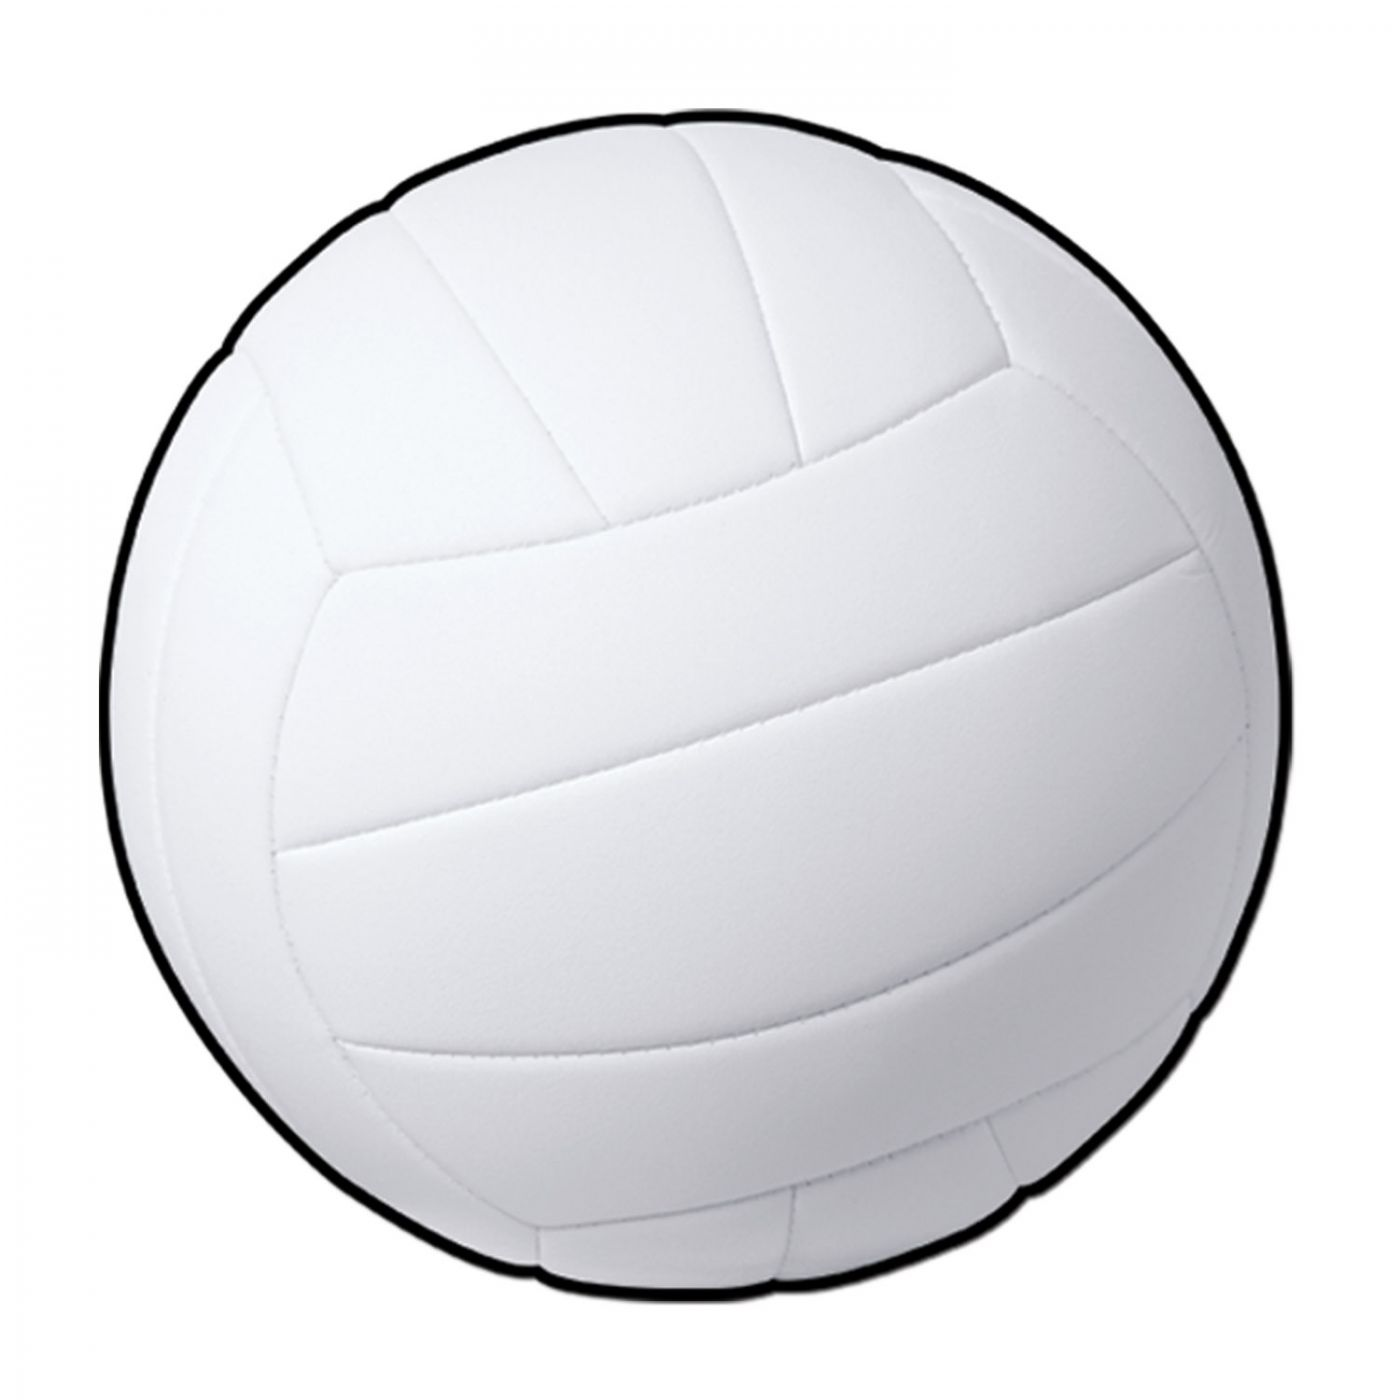 Volleyball Cutout (24) image